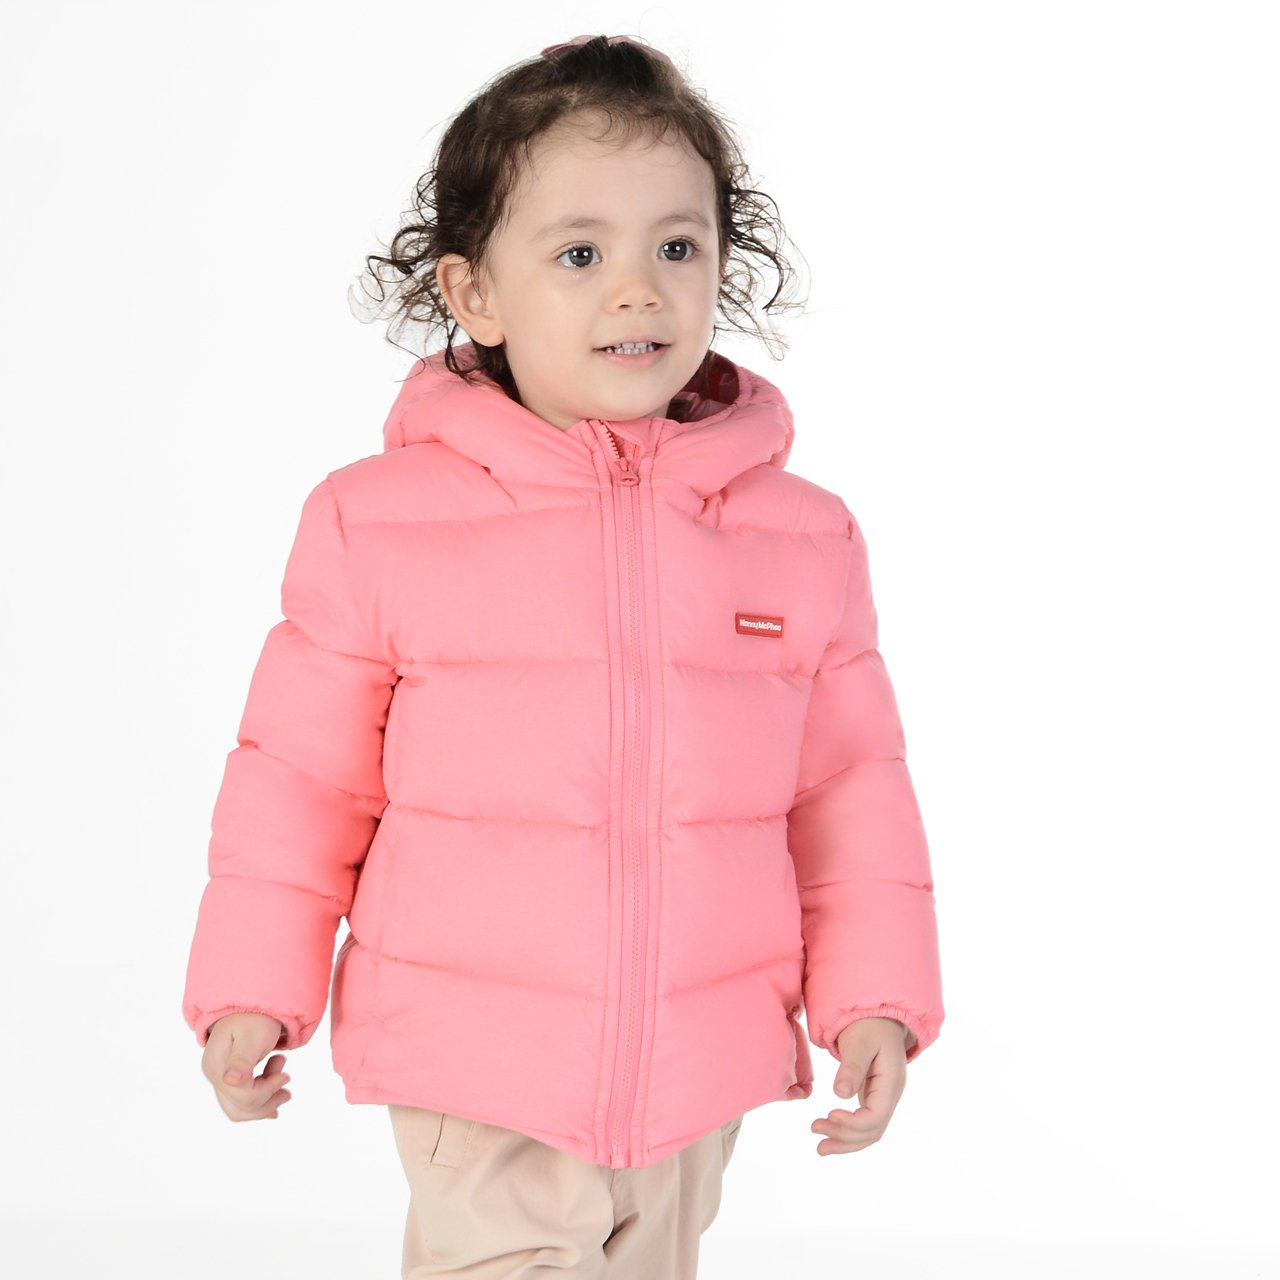 Nanny McPhee Kids Down Coat Unisex Baby Hooded Lightweight Down Puffer Jacket Outwear (More Styles Available) by Nanny McPhee (Image #2)